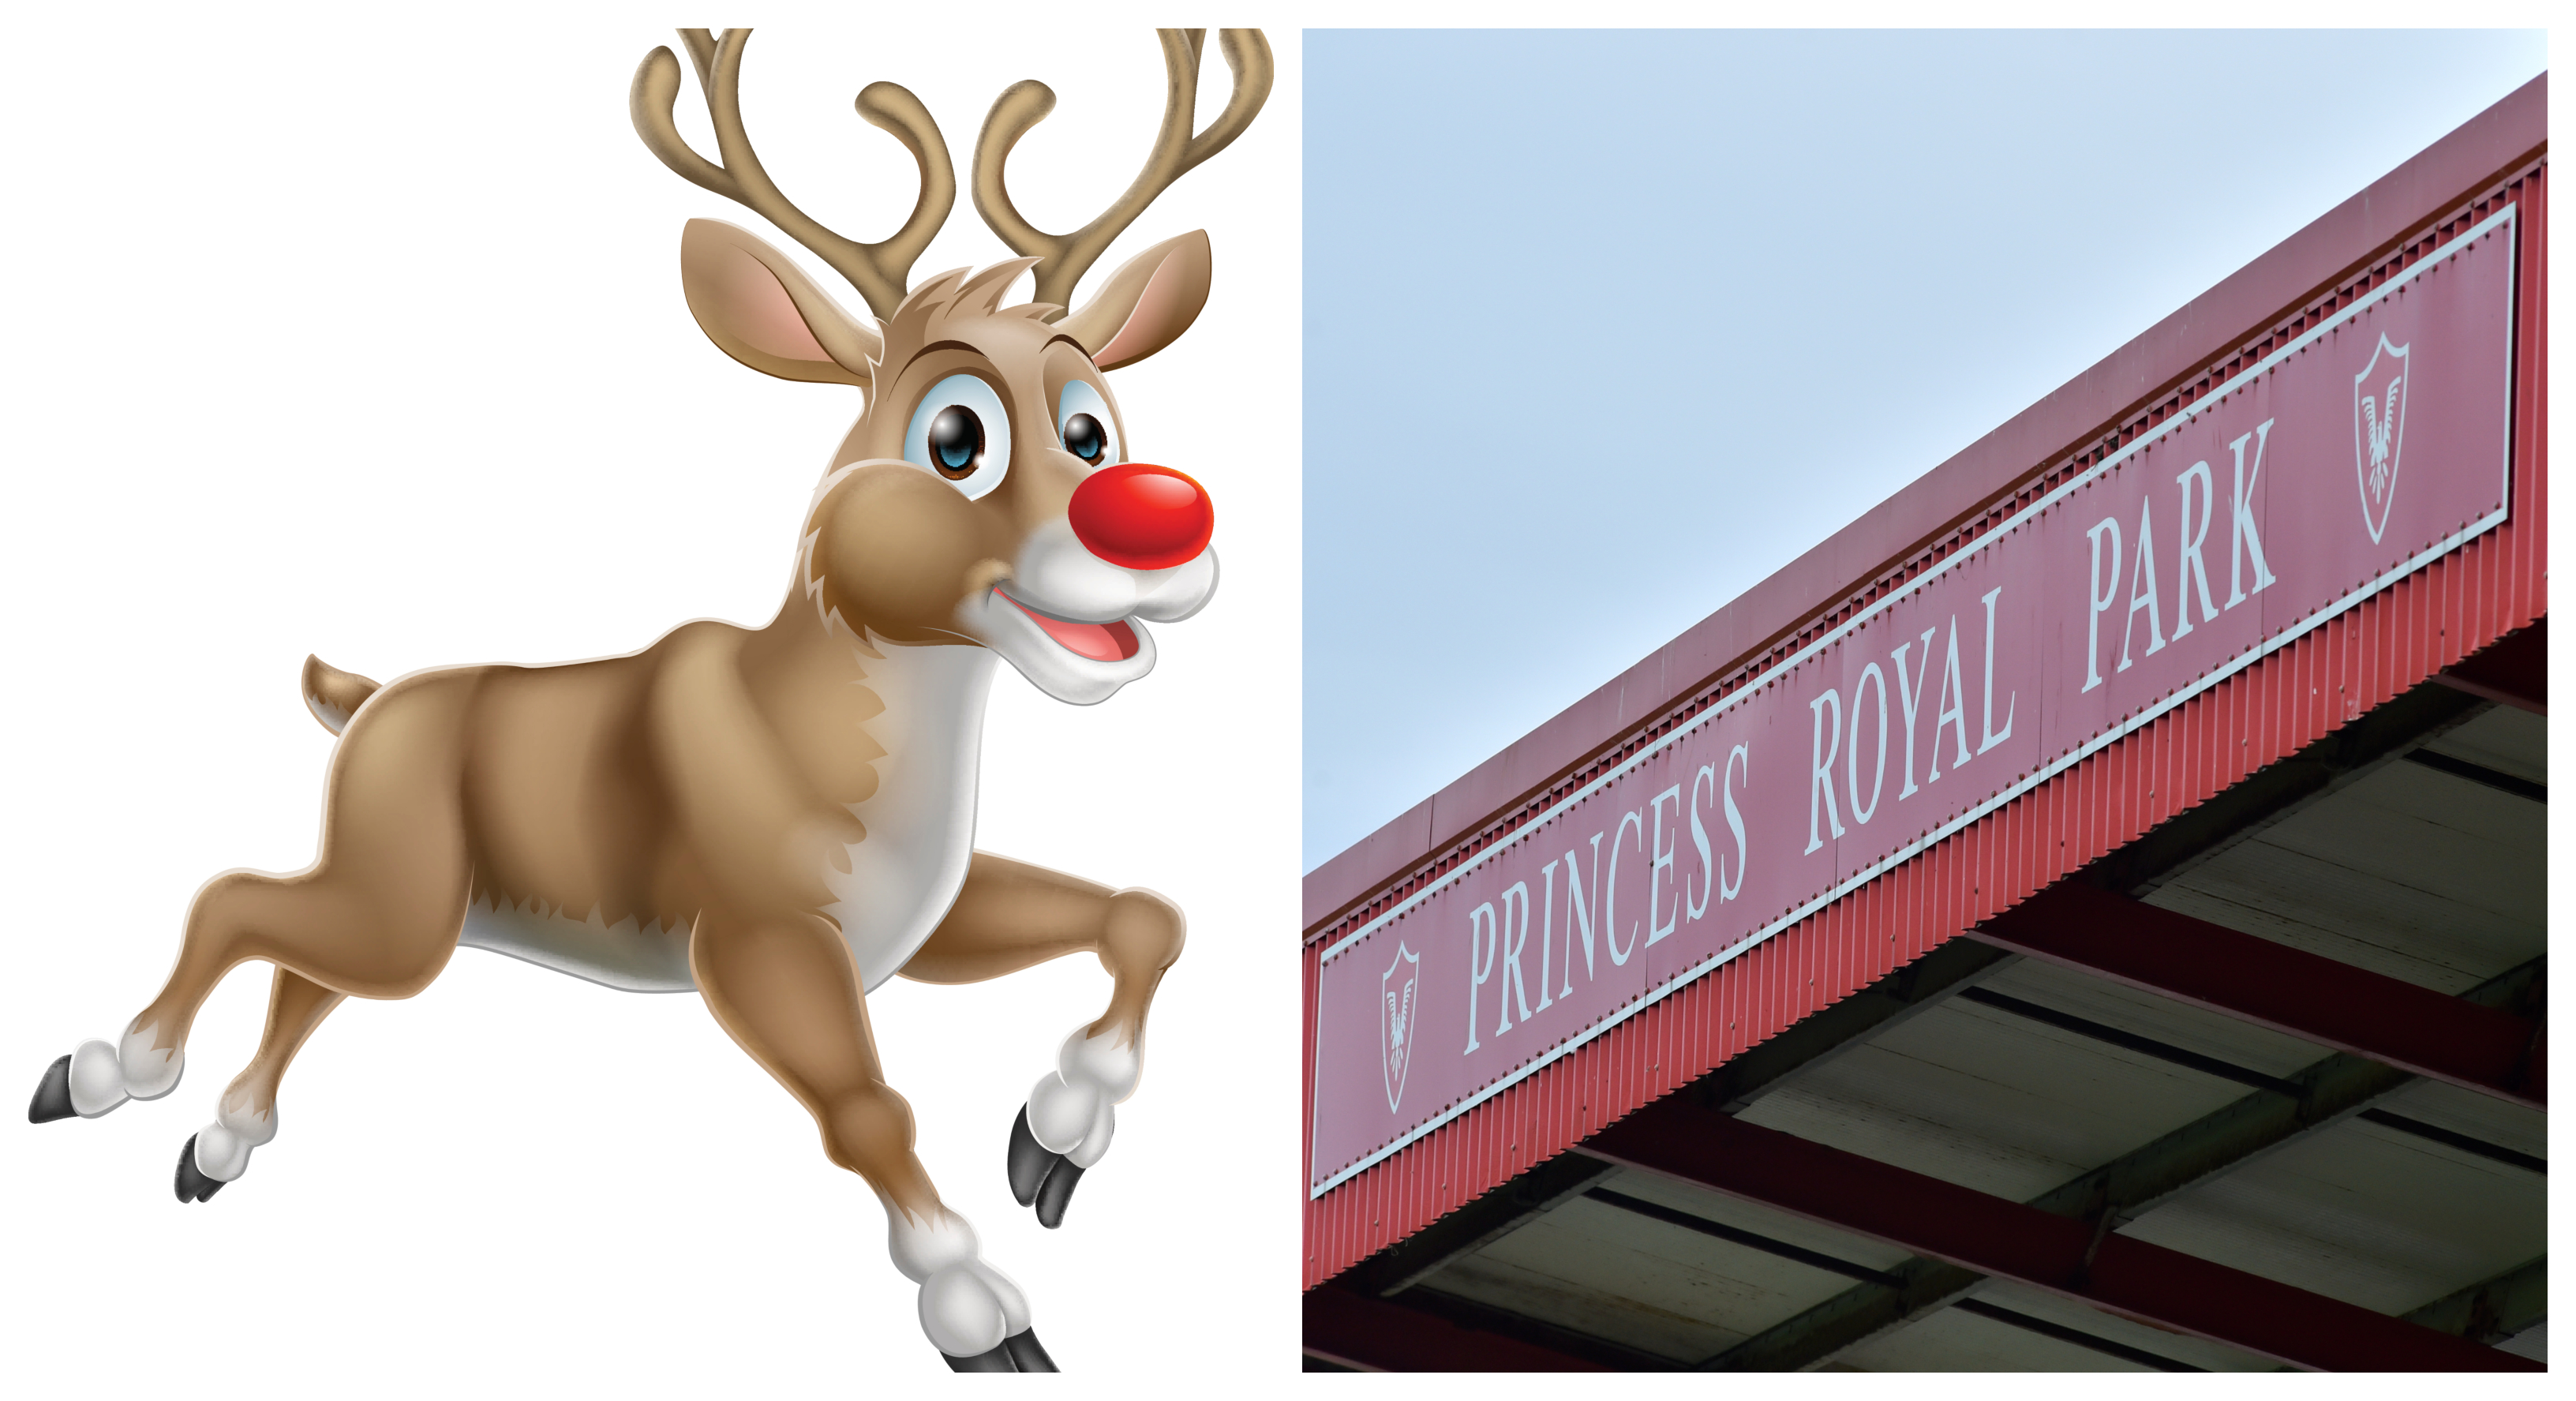 Rudolph was taken between December 31 and January 3.